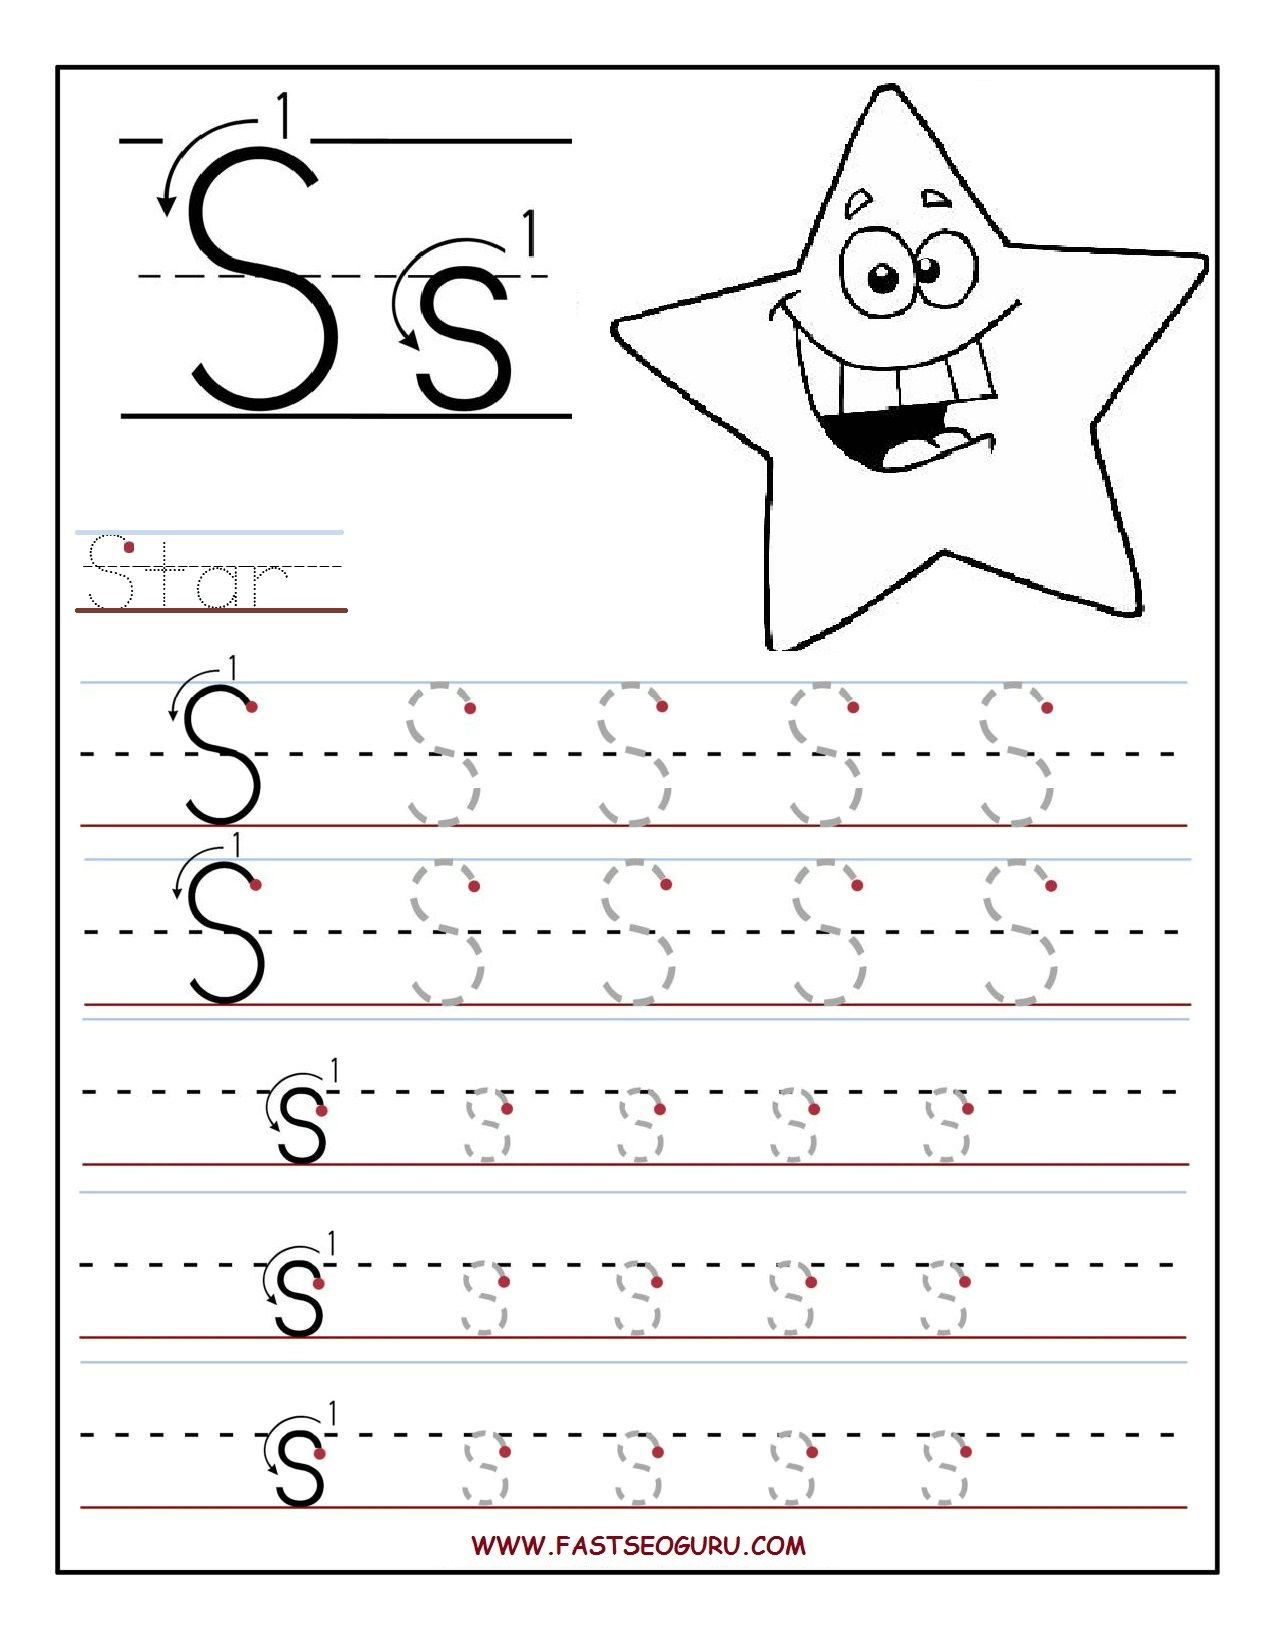 Printable Cursive Alphabet Worksheets Abitlikethis for S Letter Tracing Worksheet